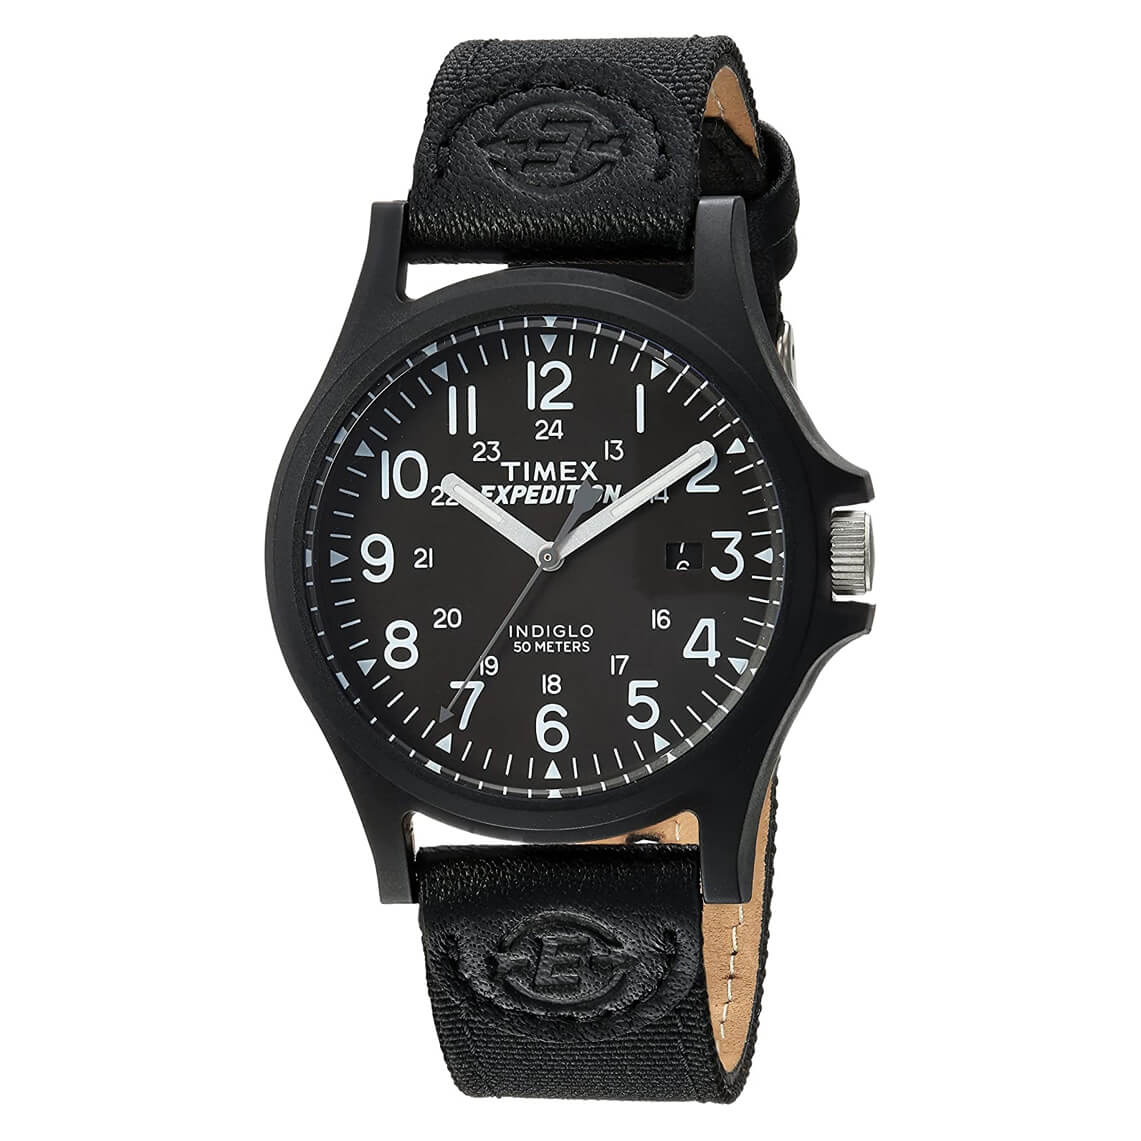 Timex Men's Expedition Full Size Watch